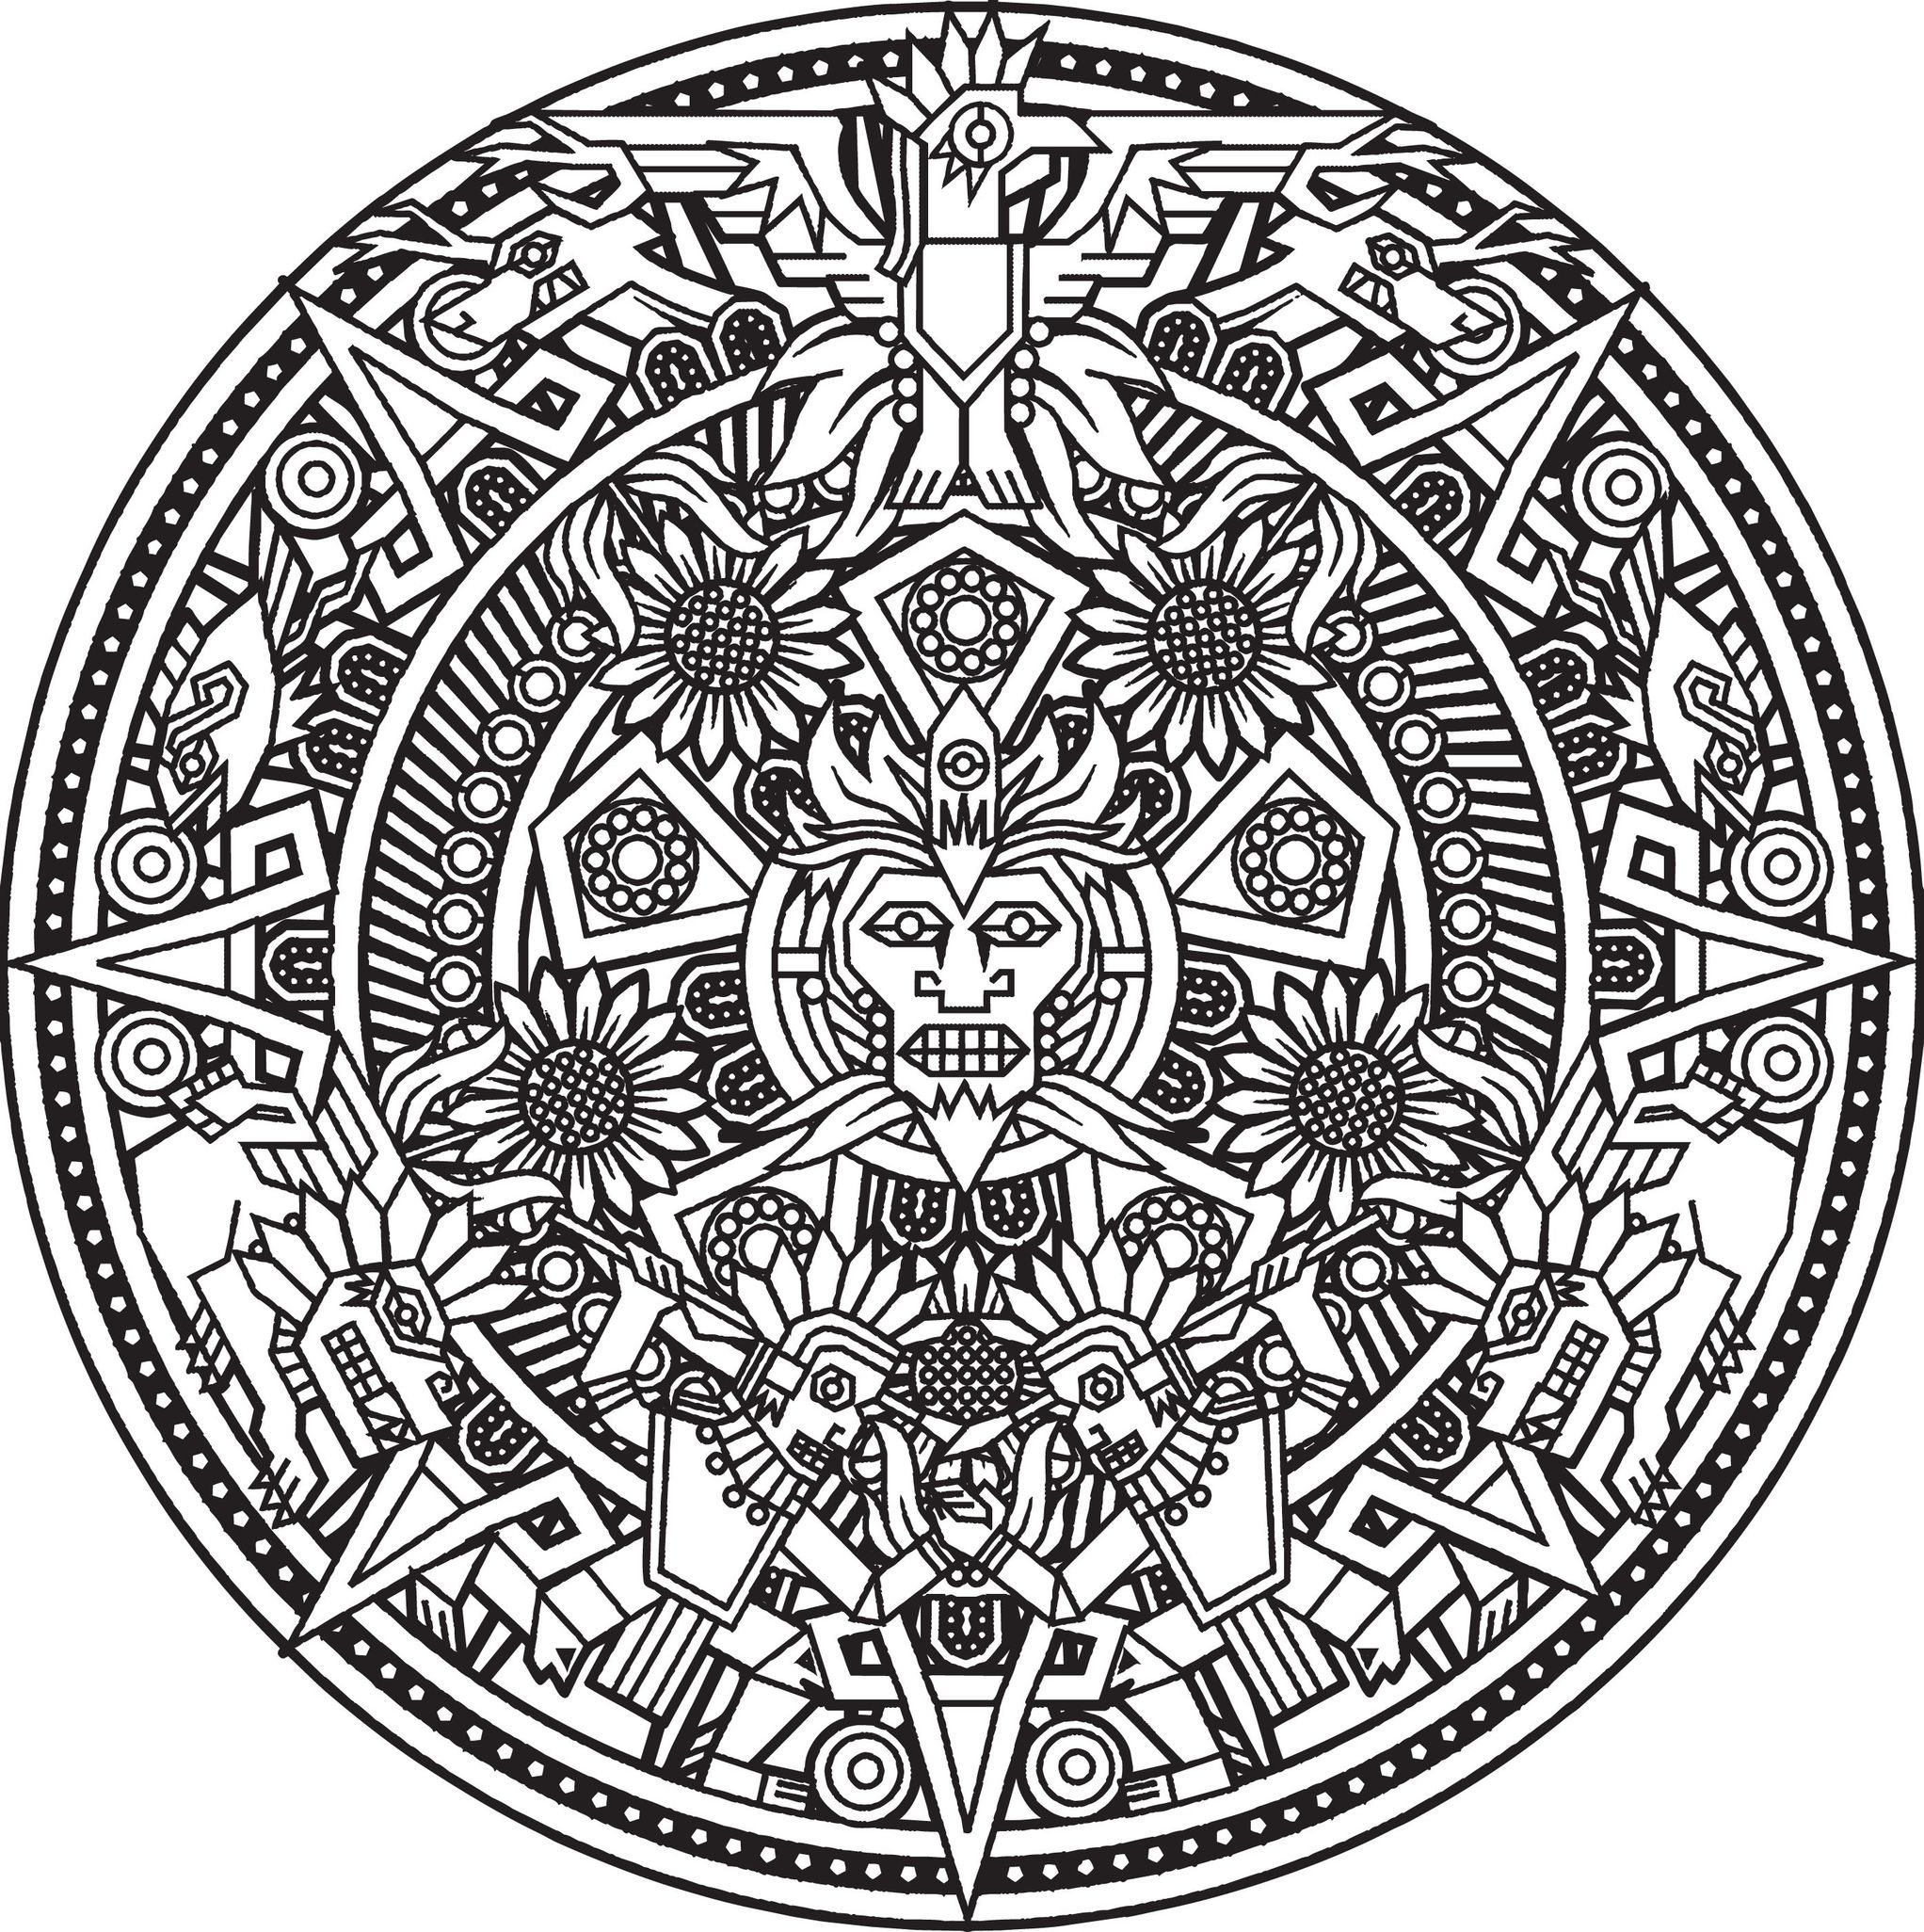 2044x2052 Mandala Inspired By Inca, Maya And Aztec Art, From The Gallery